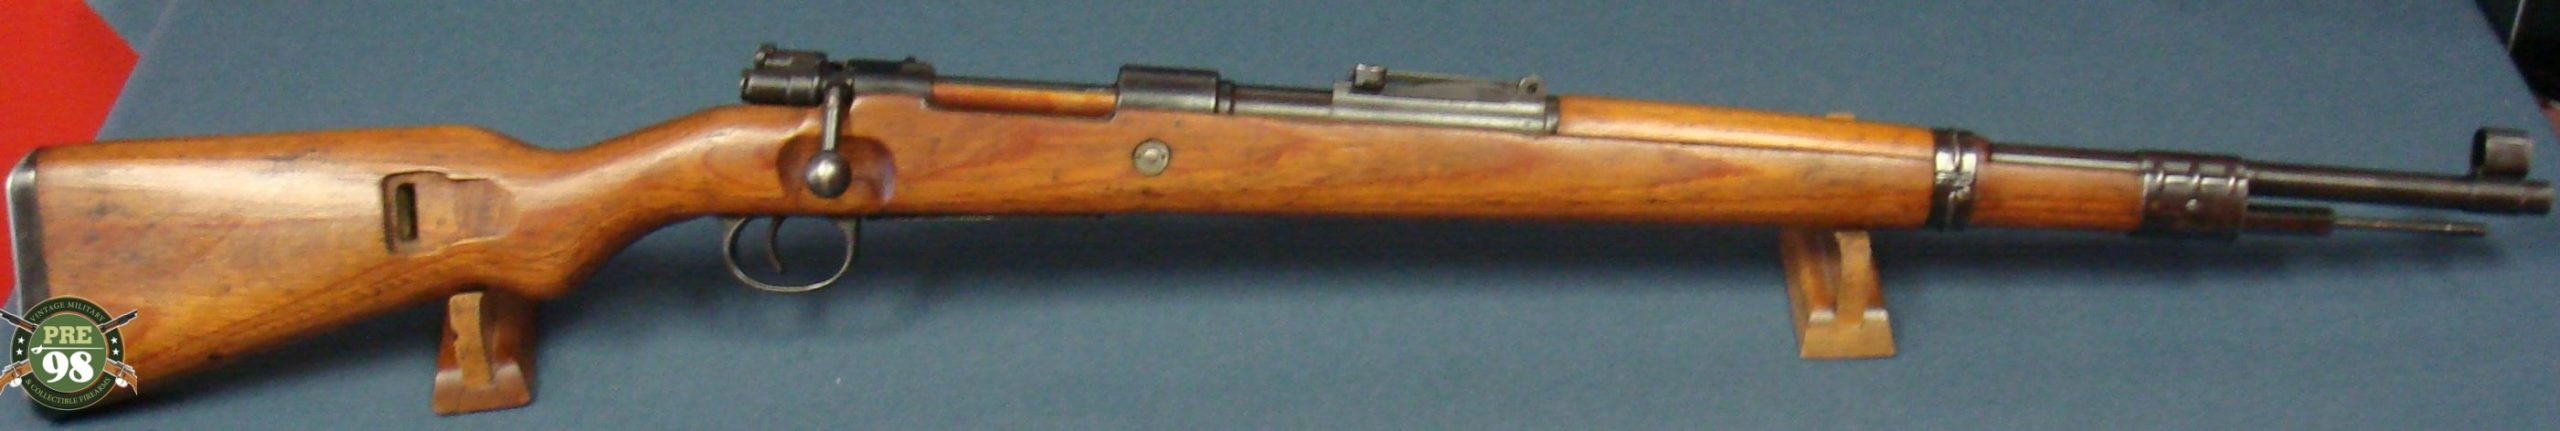 VERY RARE POST WAR FRENCH SVW MB 98K MAUSER RIFLE